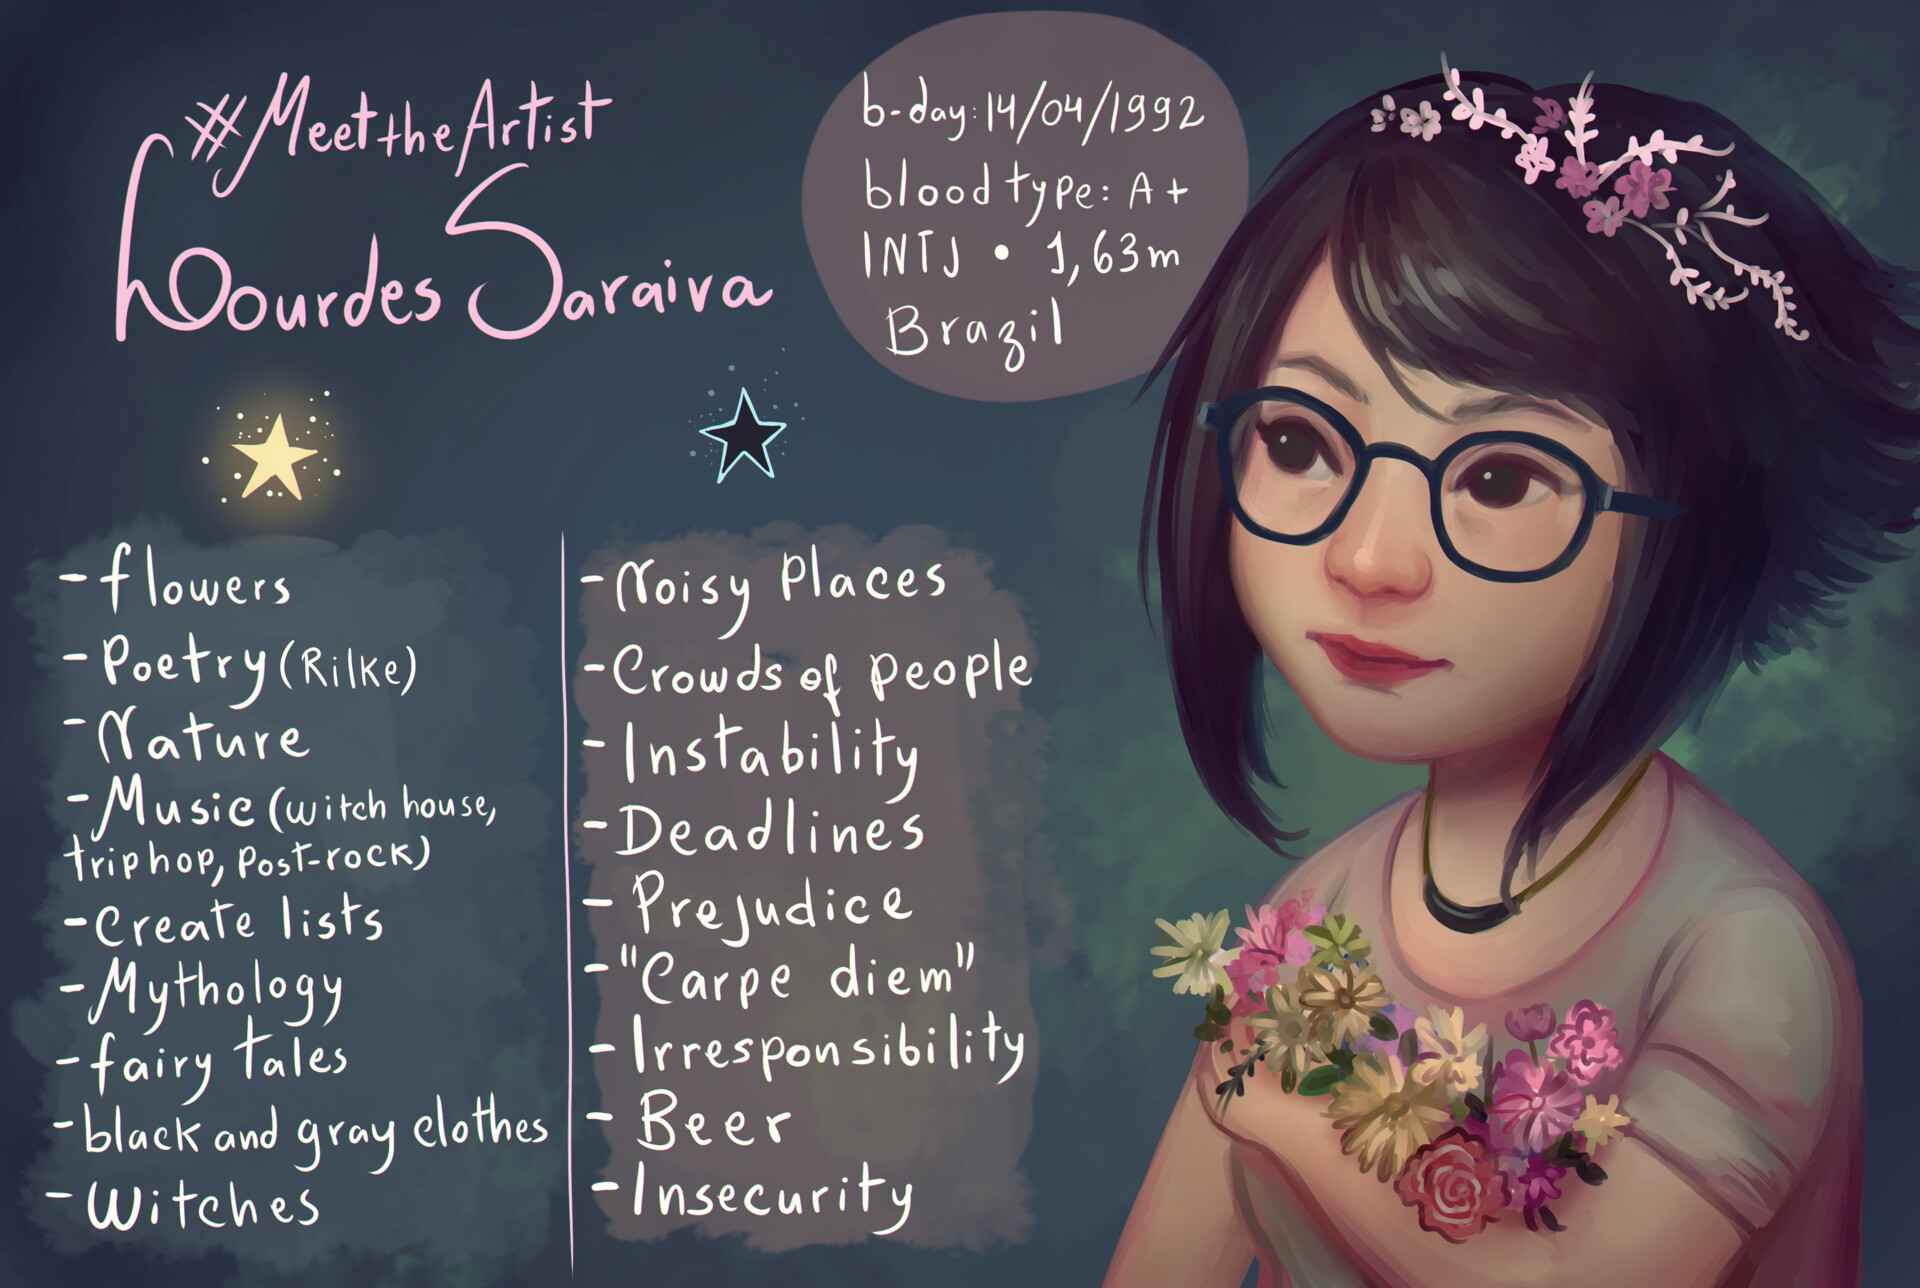 Lourdes saraiva meettheartist by agnes green daxfzv6